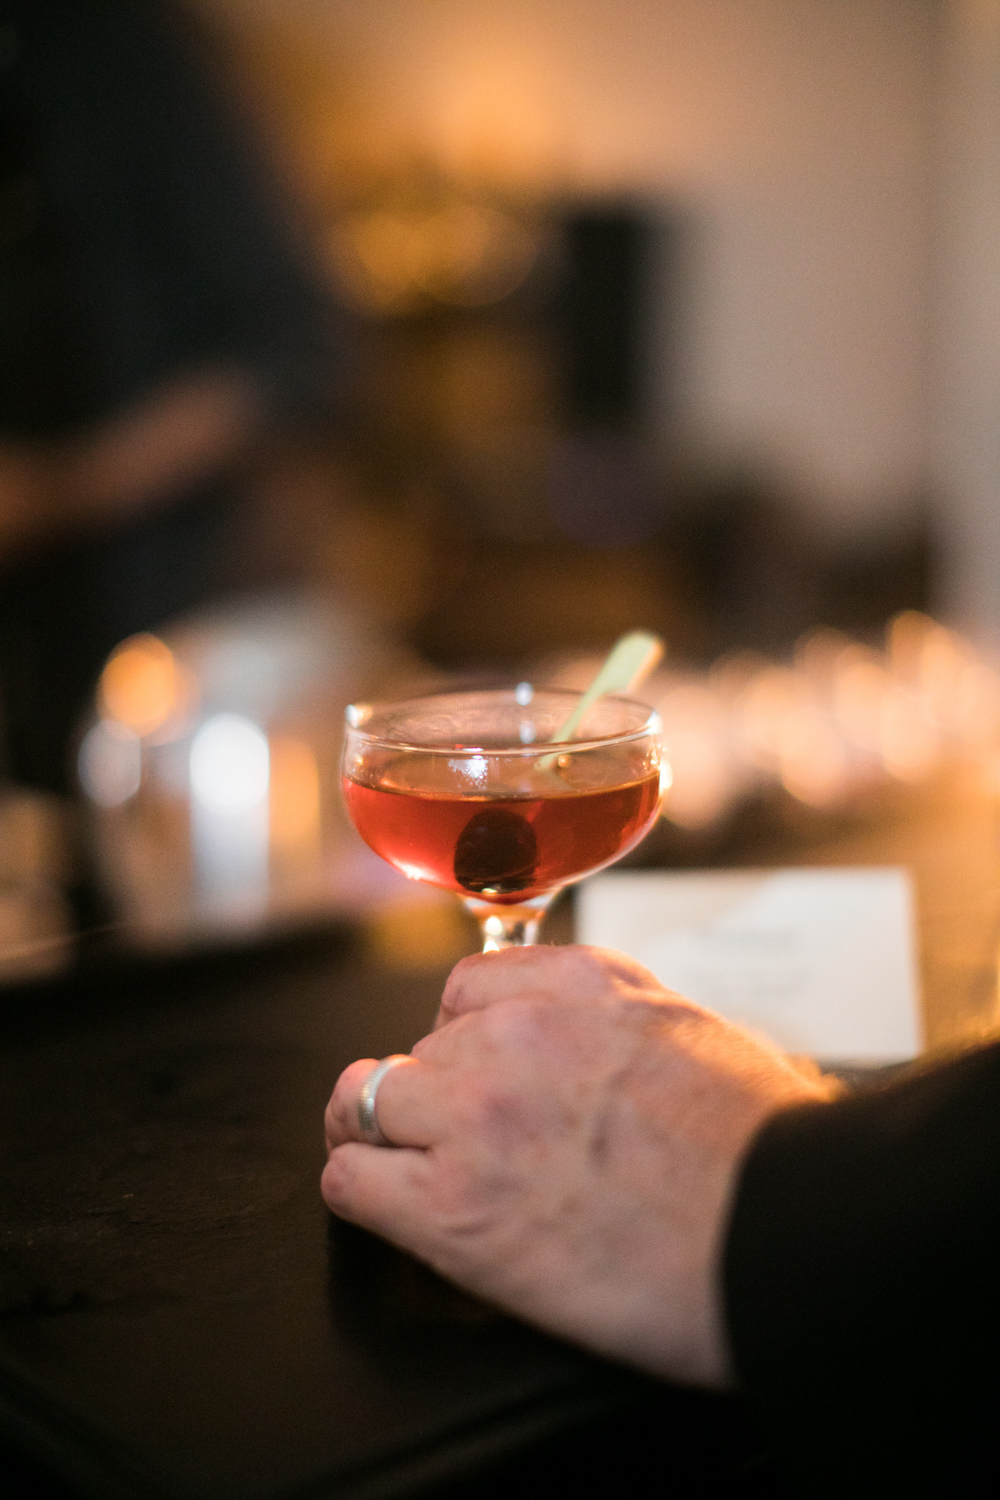 A guest takes a cocktail at an Ace Hotel wedding reception.